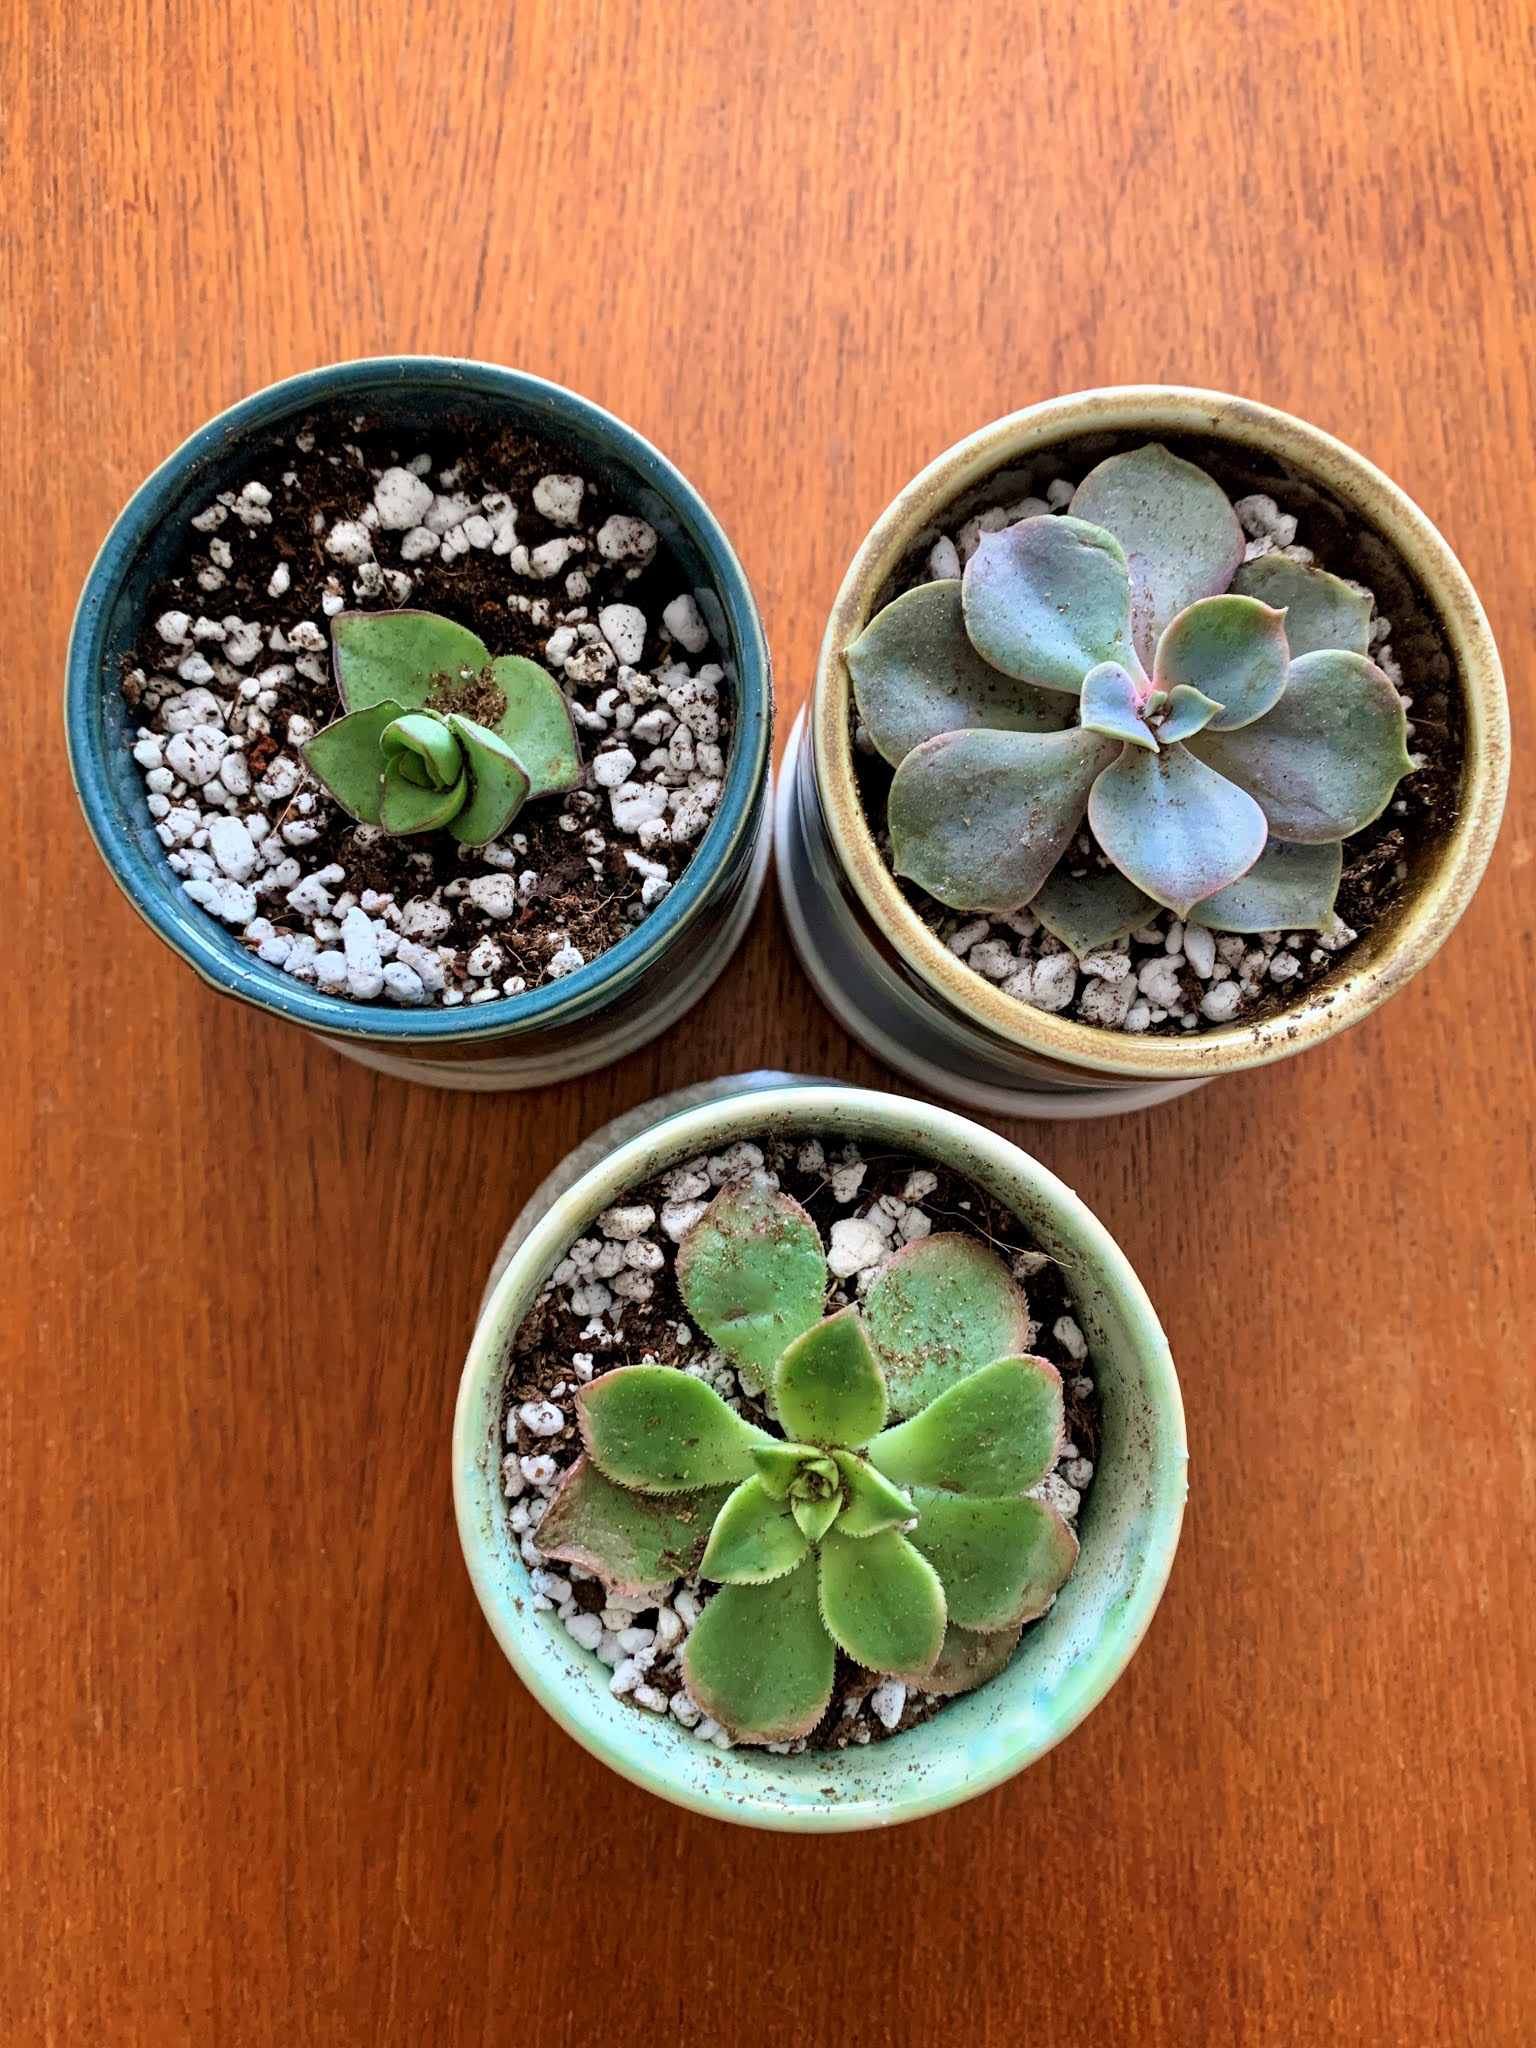 My Favorite Fall Home Decor Look: Potted Succulents: